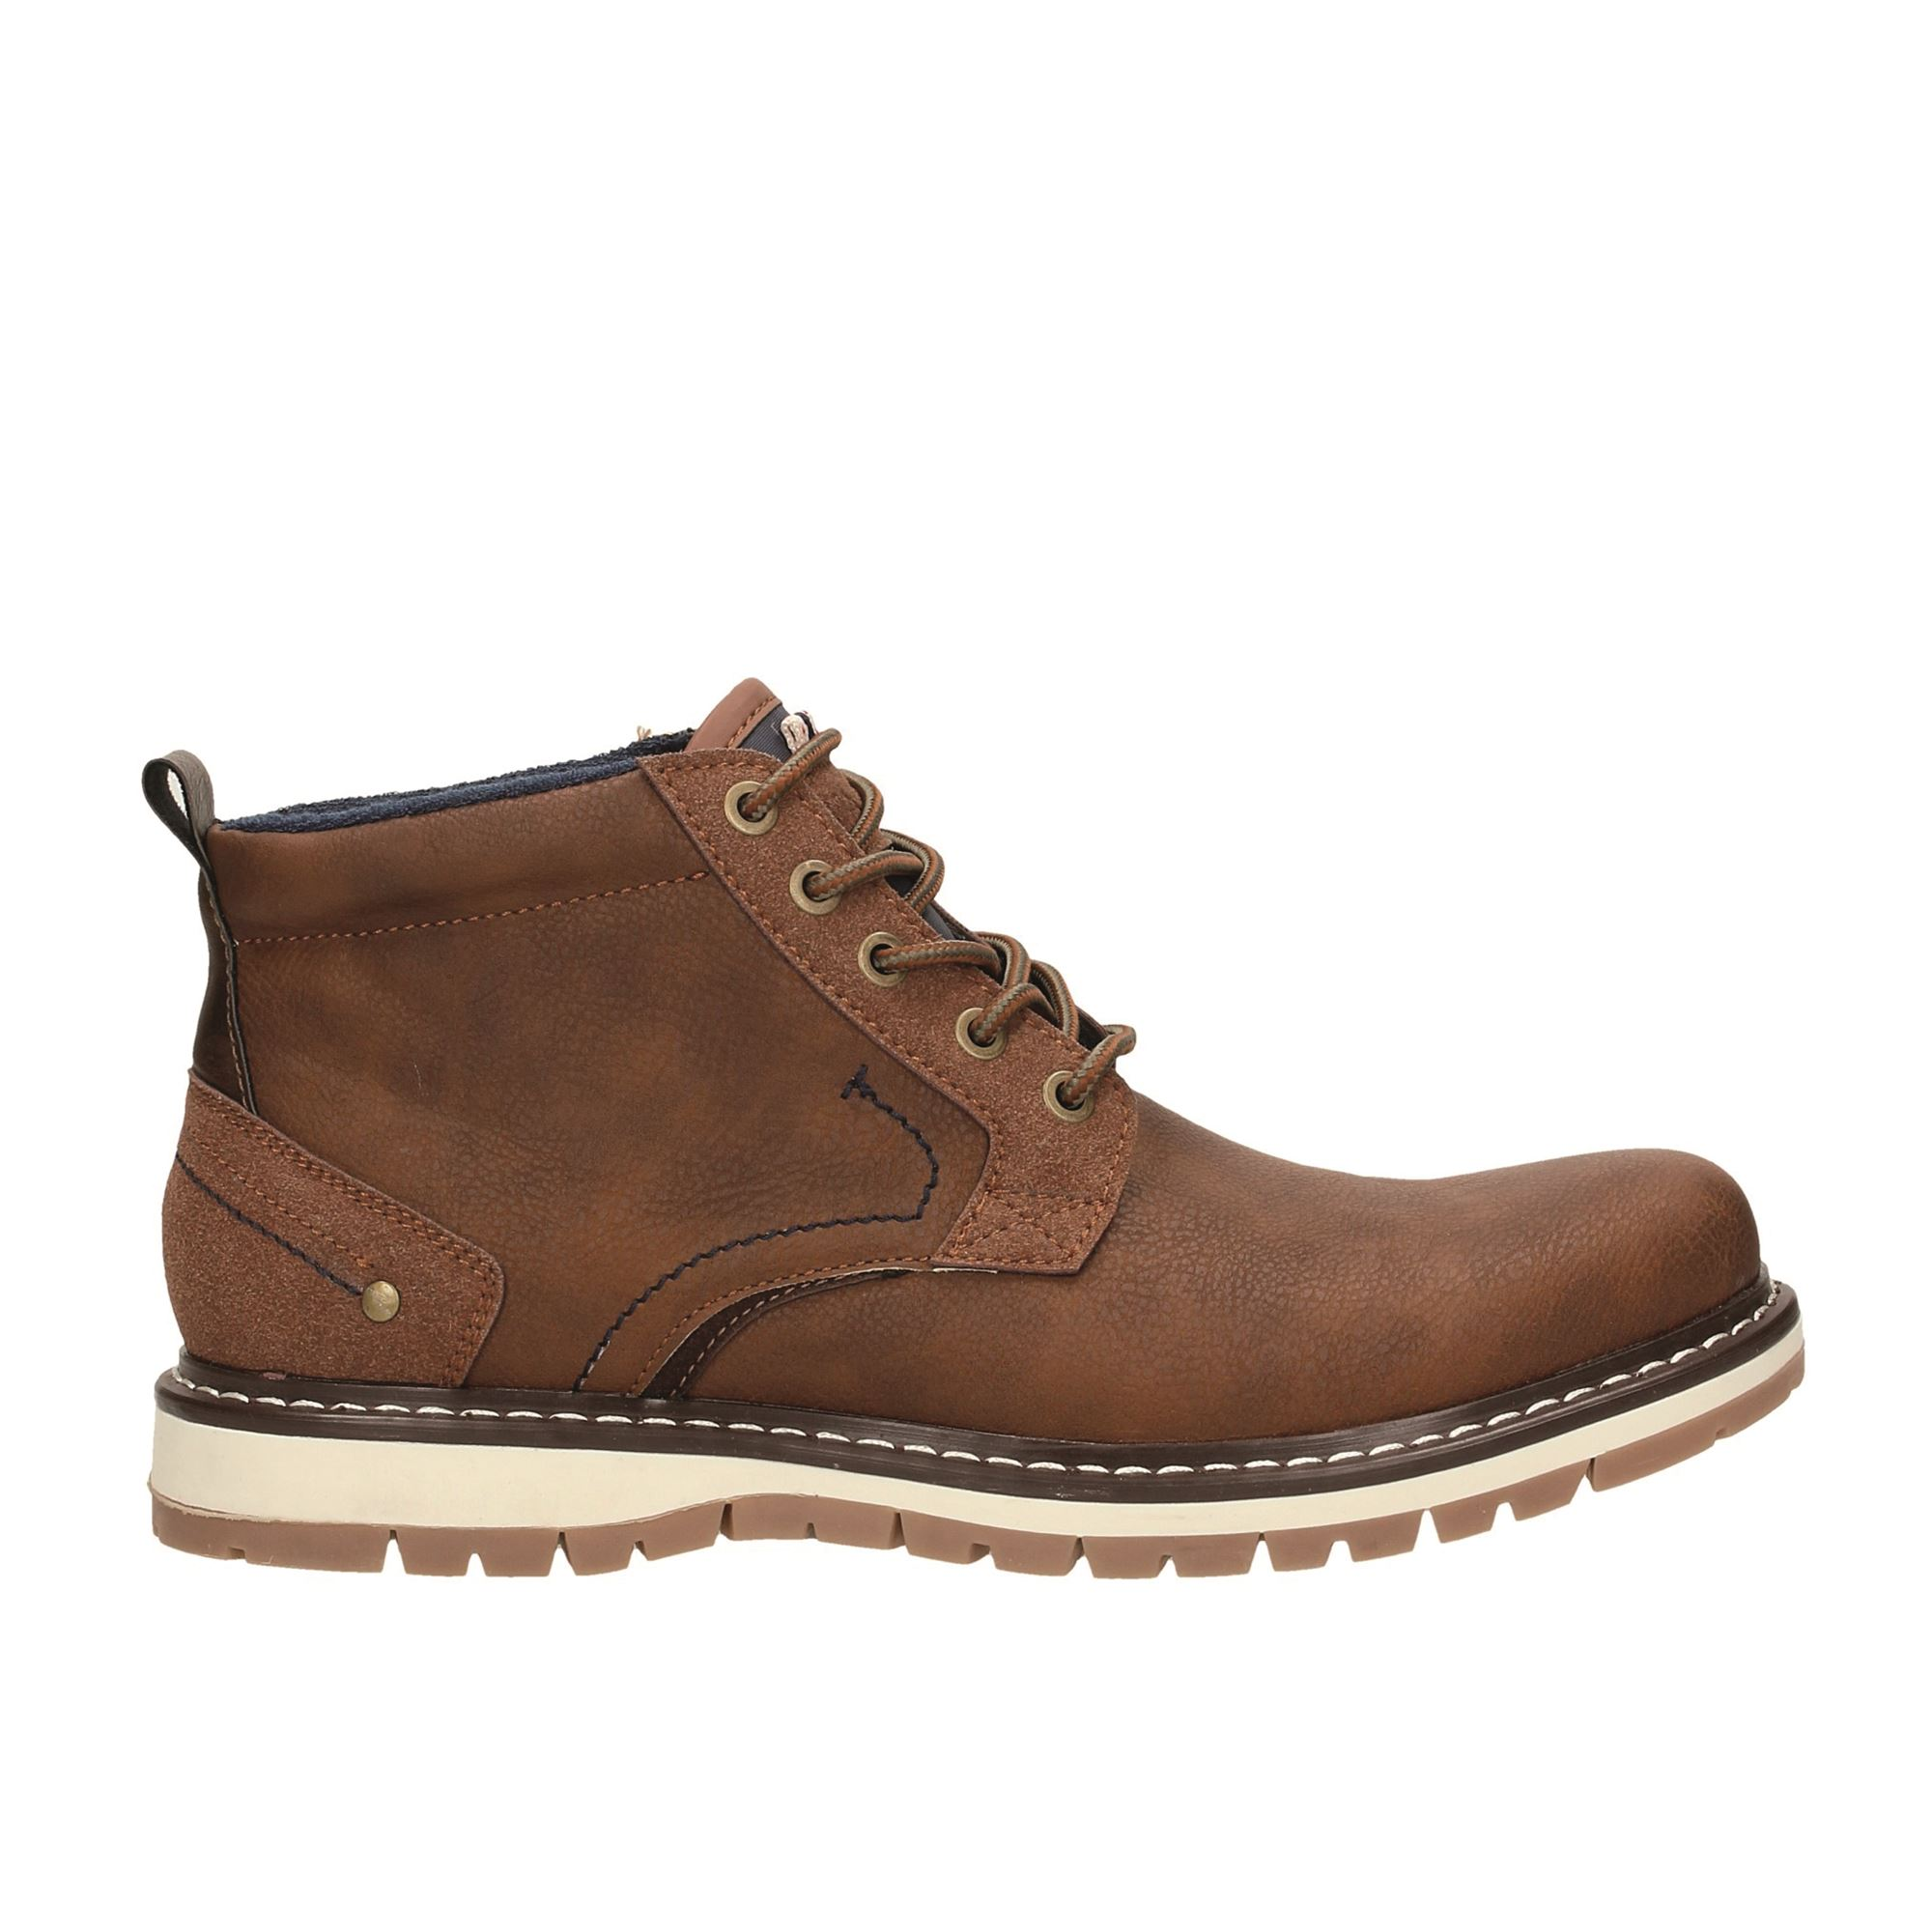 Tata Italia Shoes Man Stivaletti Brown KMS7657